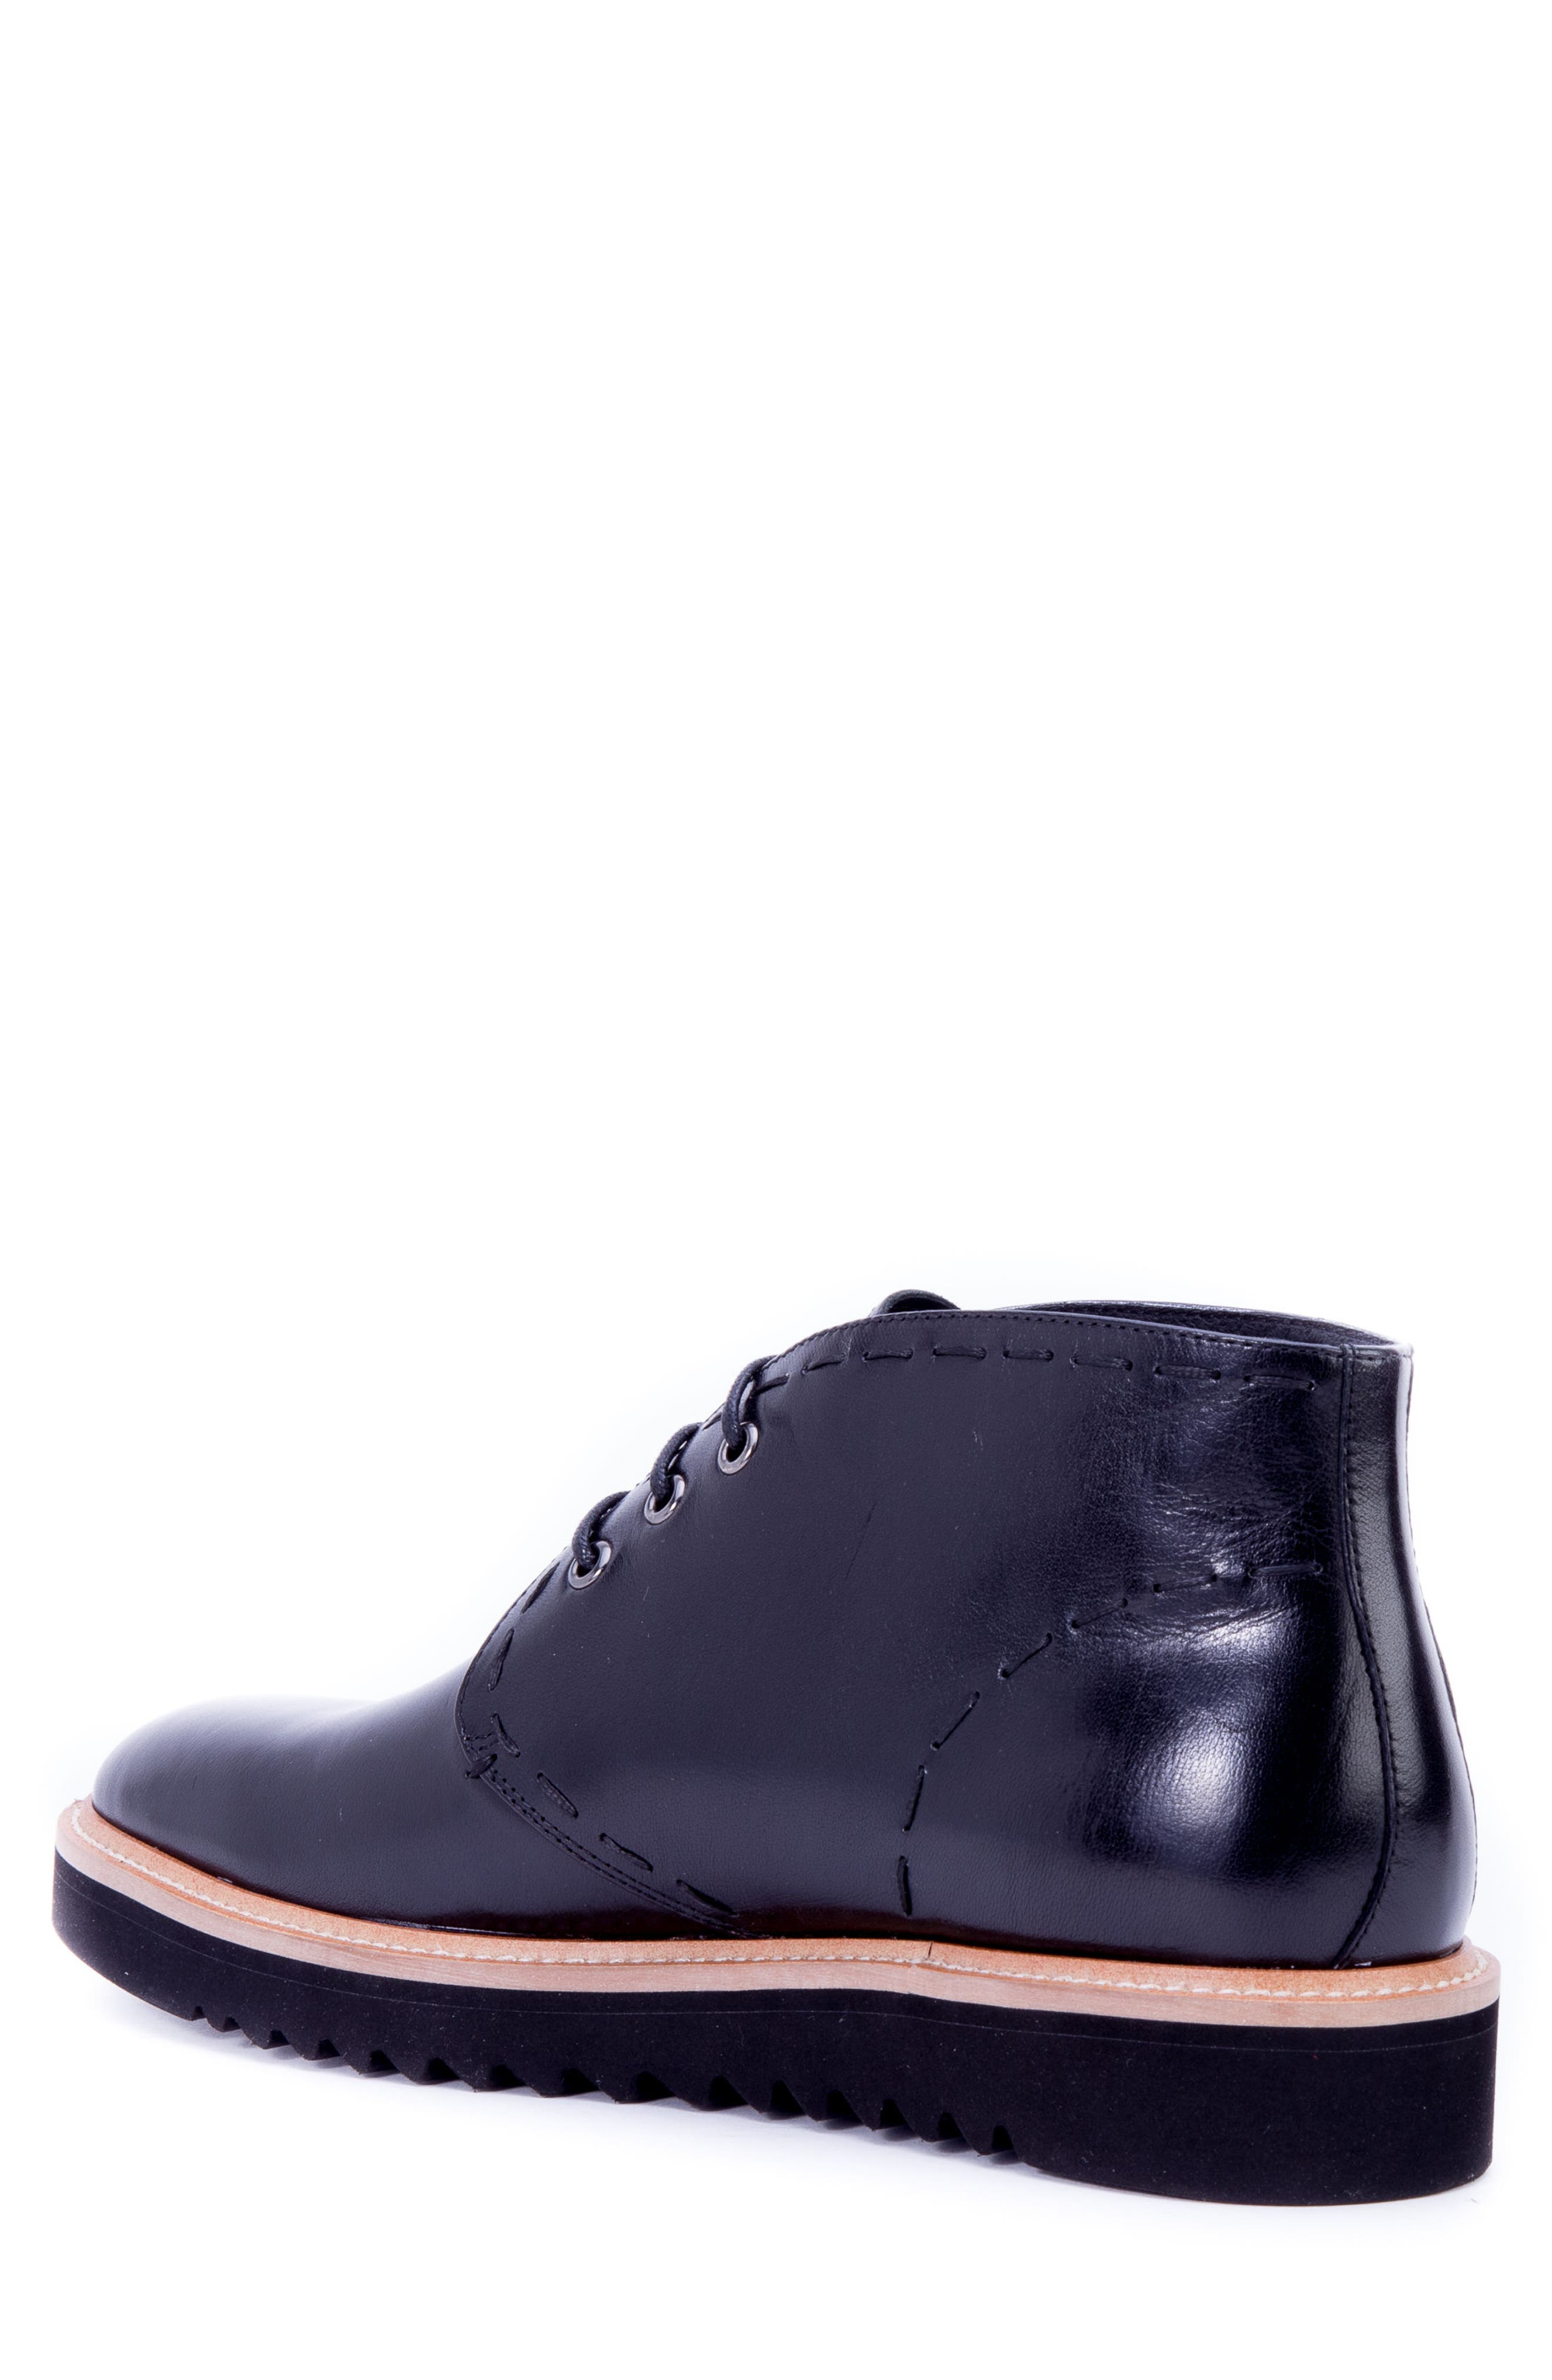 Lombardo Chukka Boot,                             Alternate thumbnail 2, color,                             Black Leather